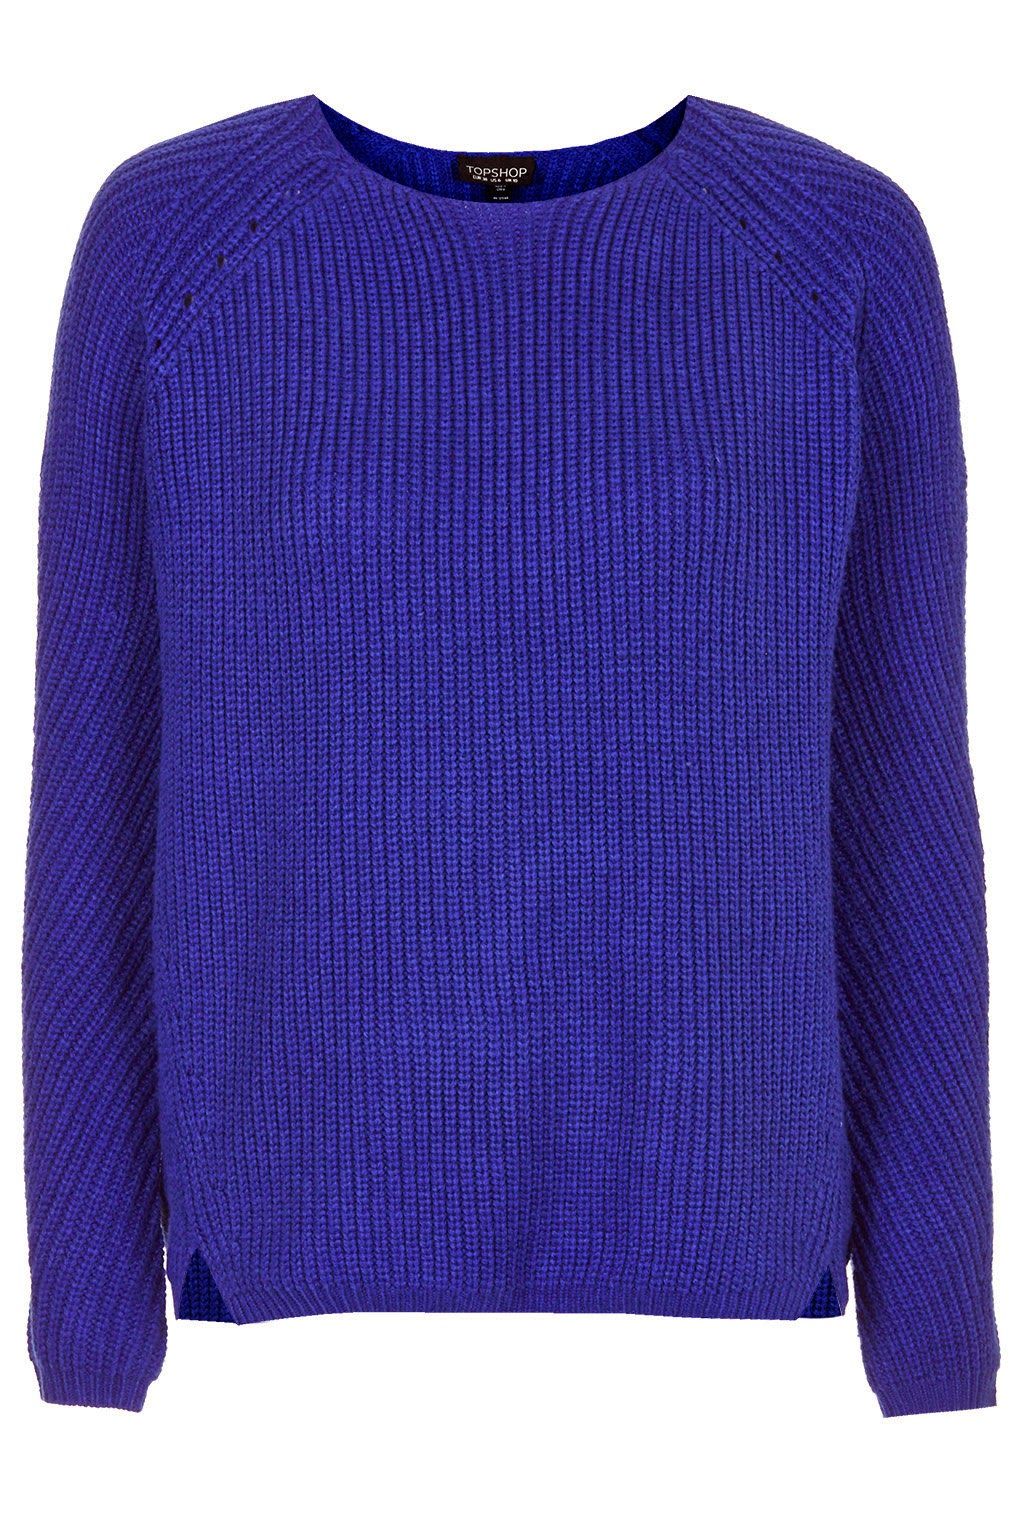 royal blue knitted jumper